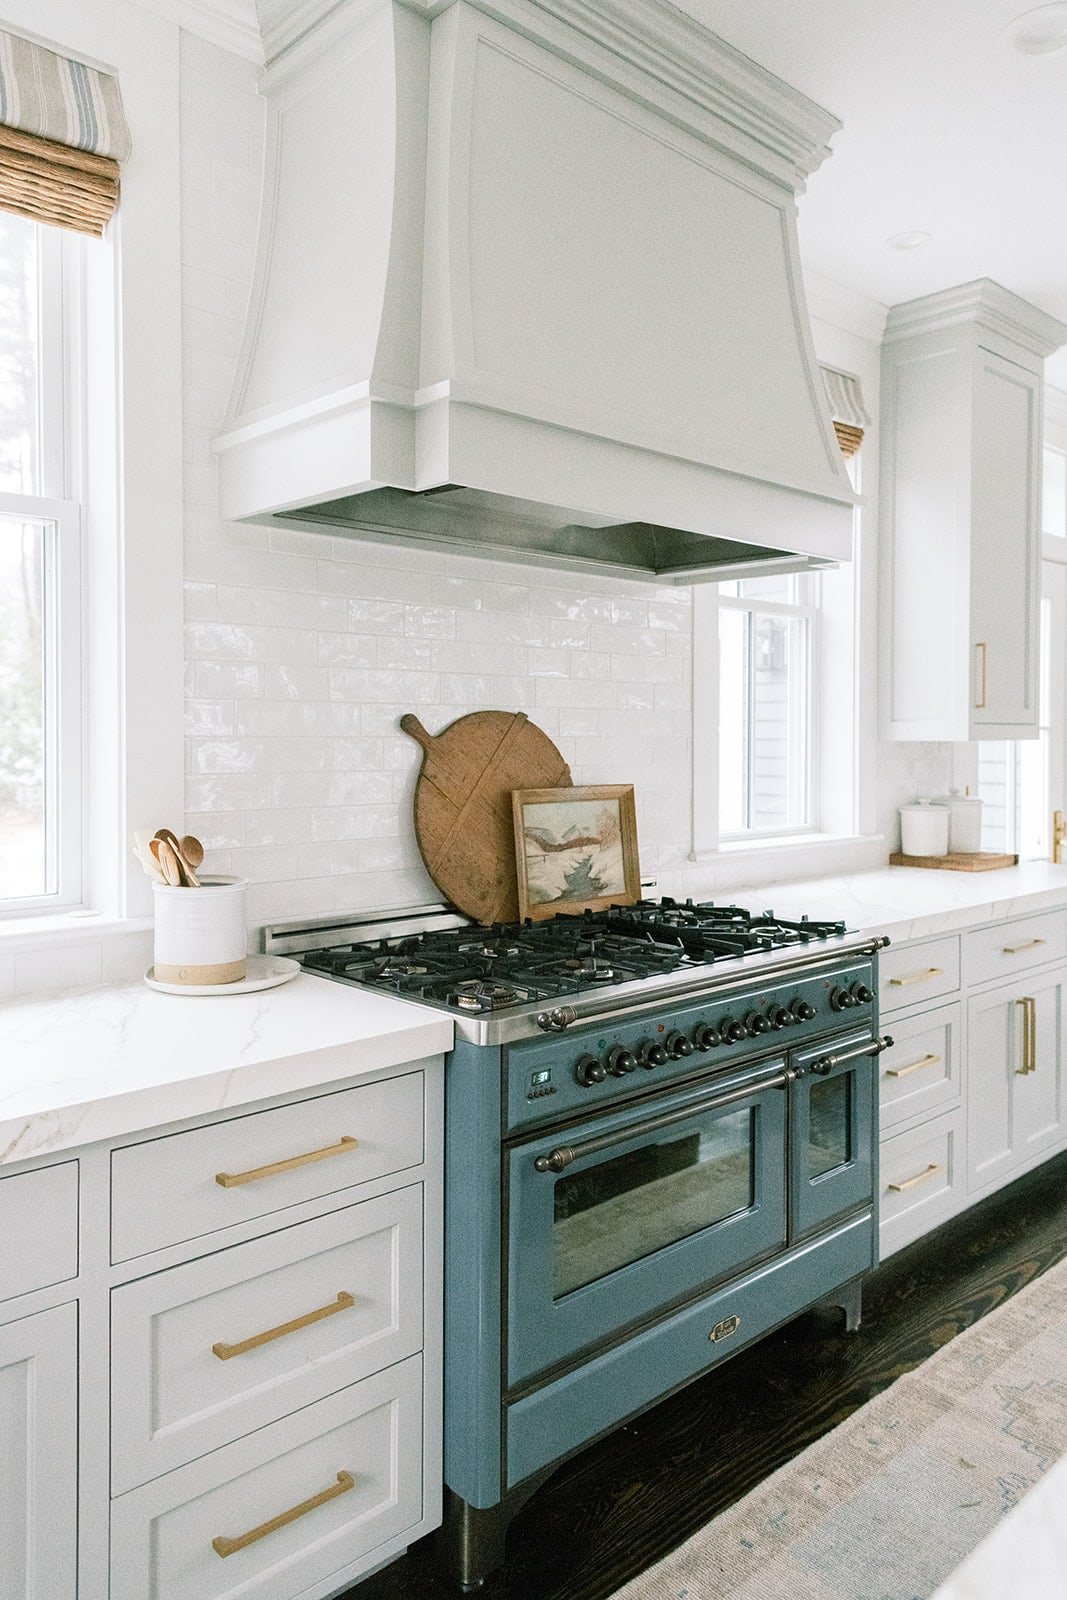 New England home tour kitchen European blue range